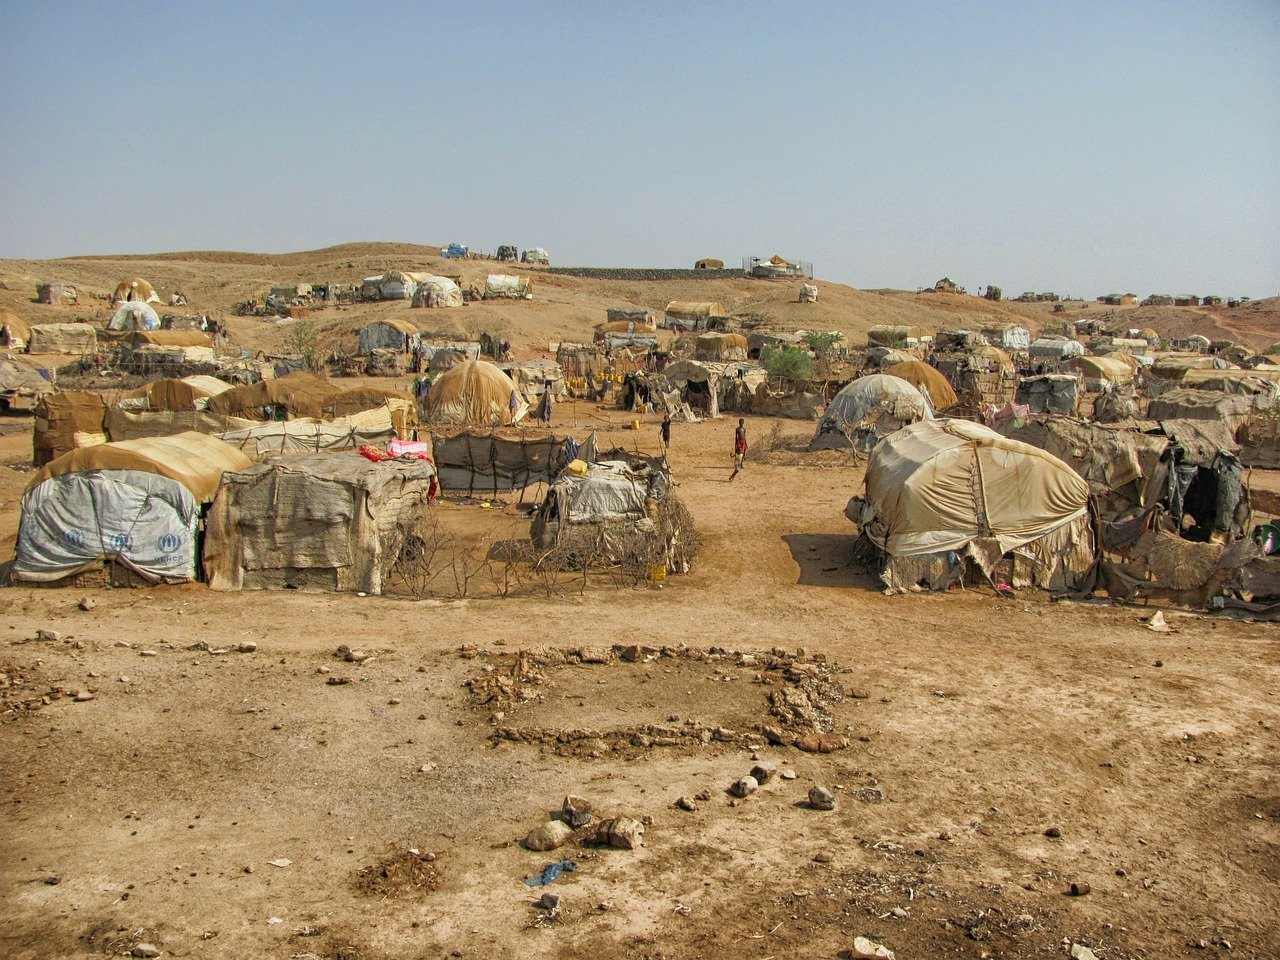 UNHCR calls out serious violations of international law at Tigray refugee camps